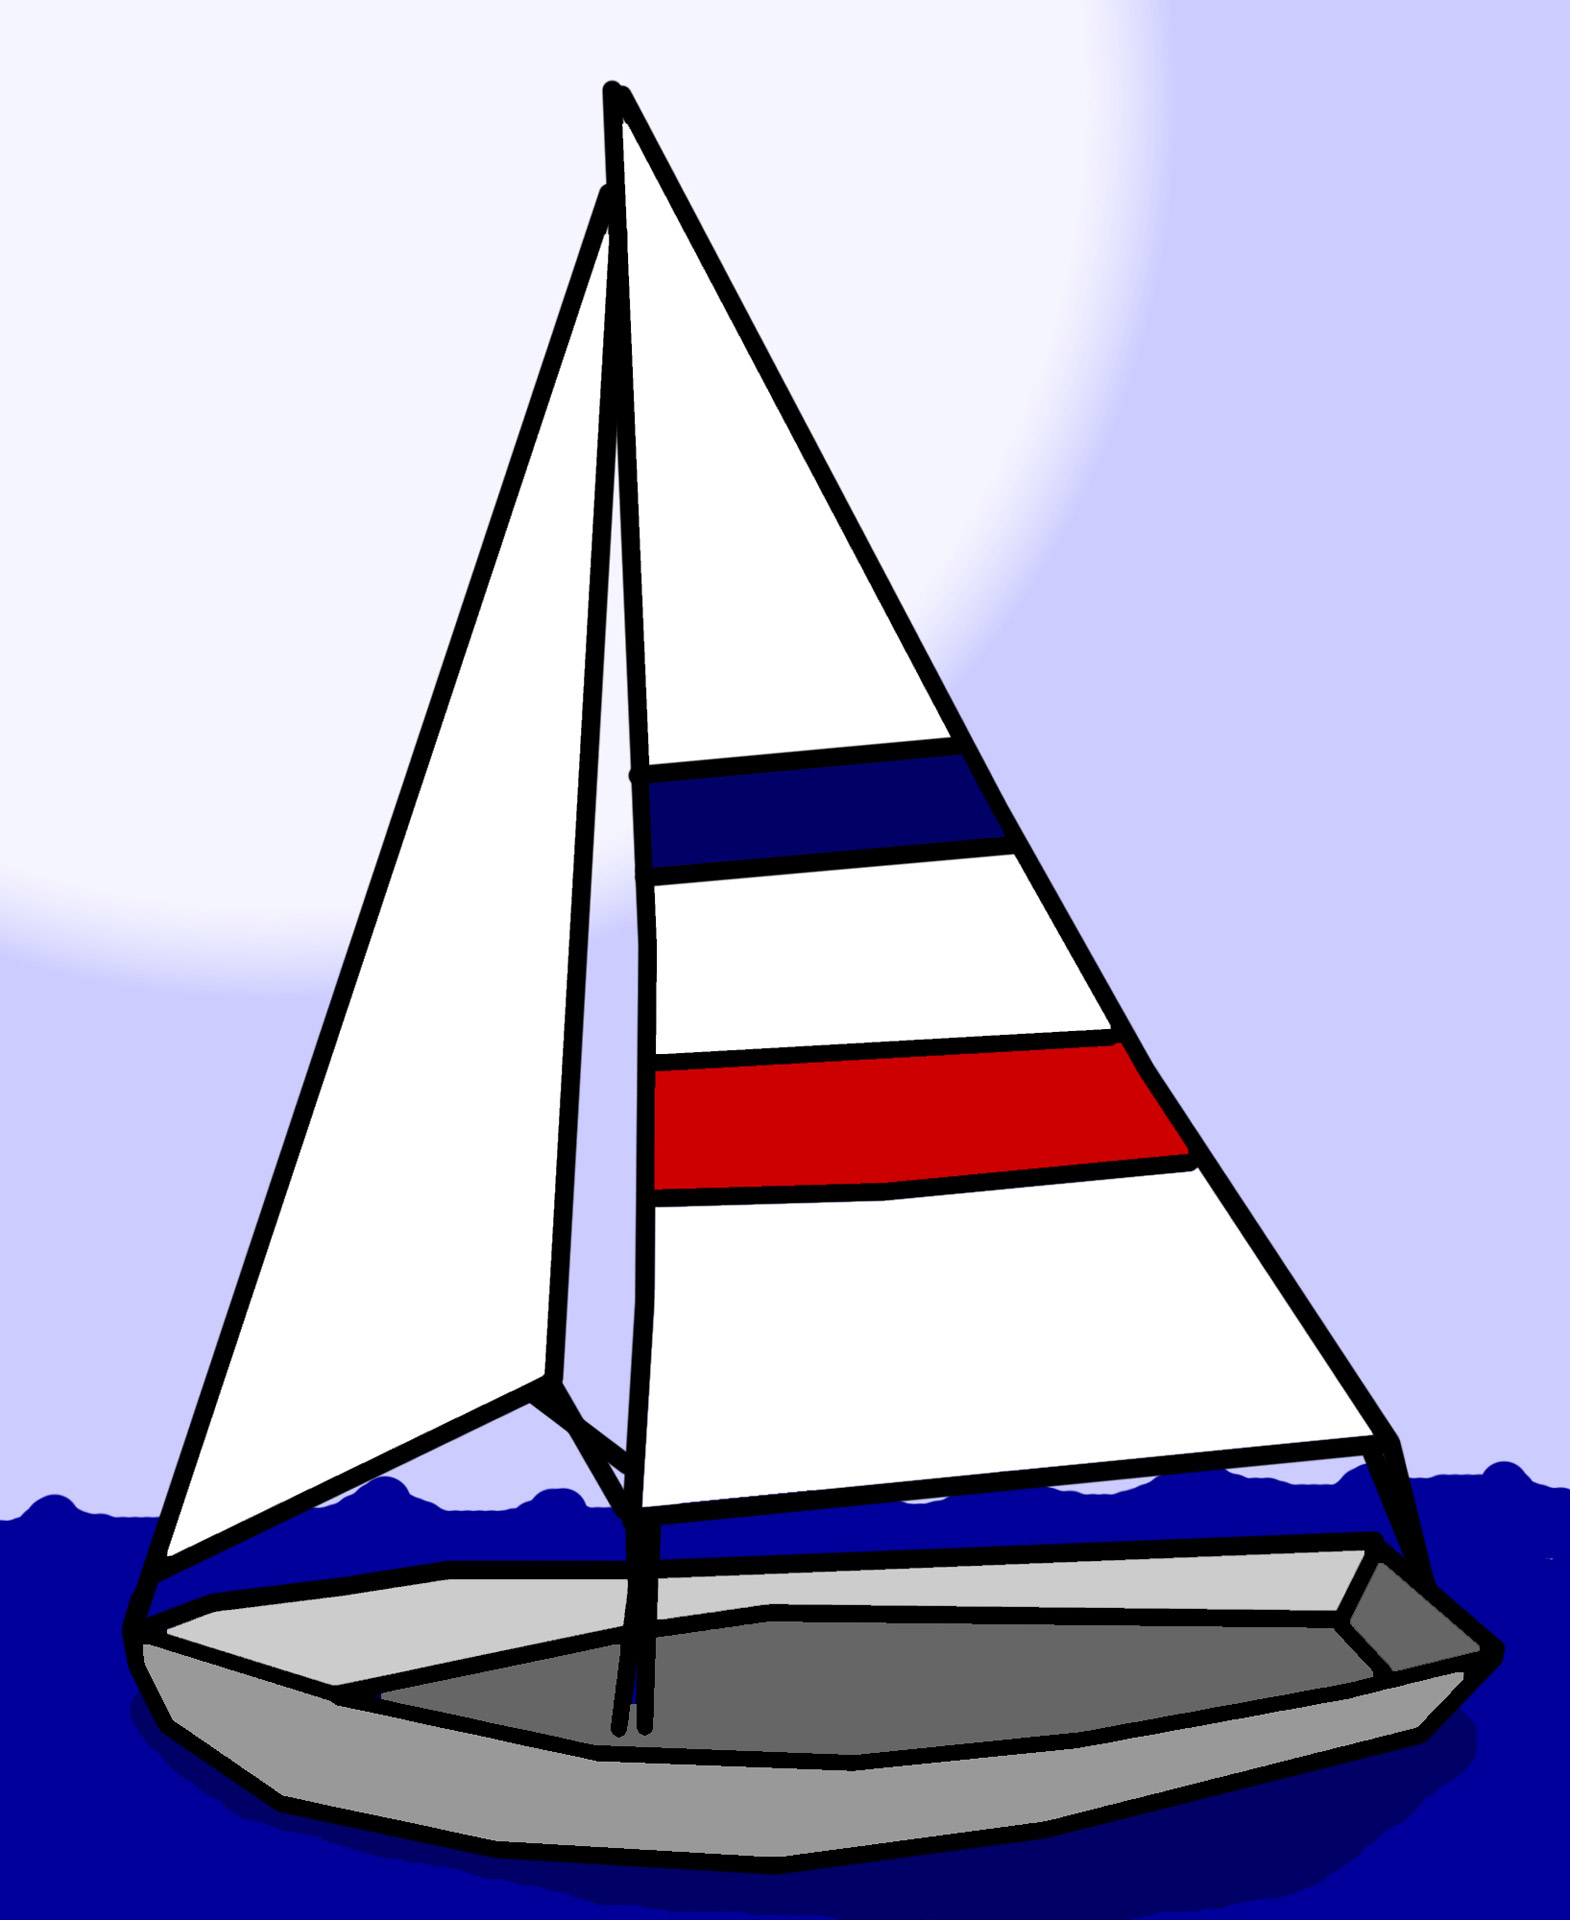 Sailing clipart sailboat #13